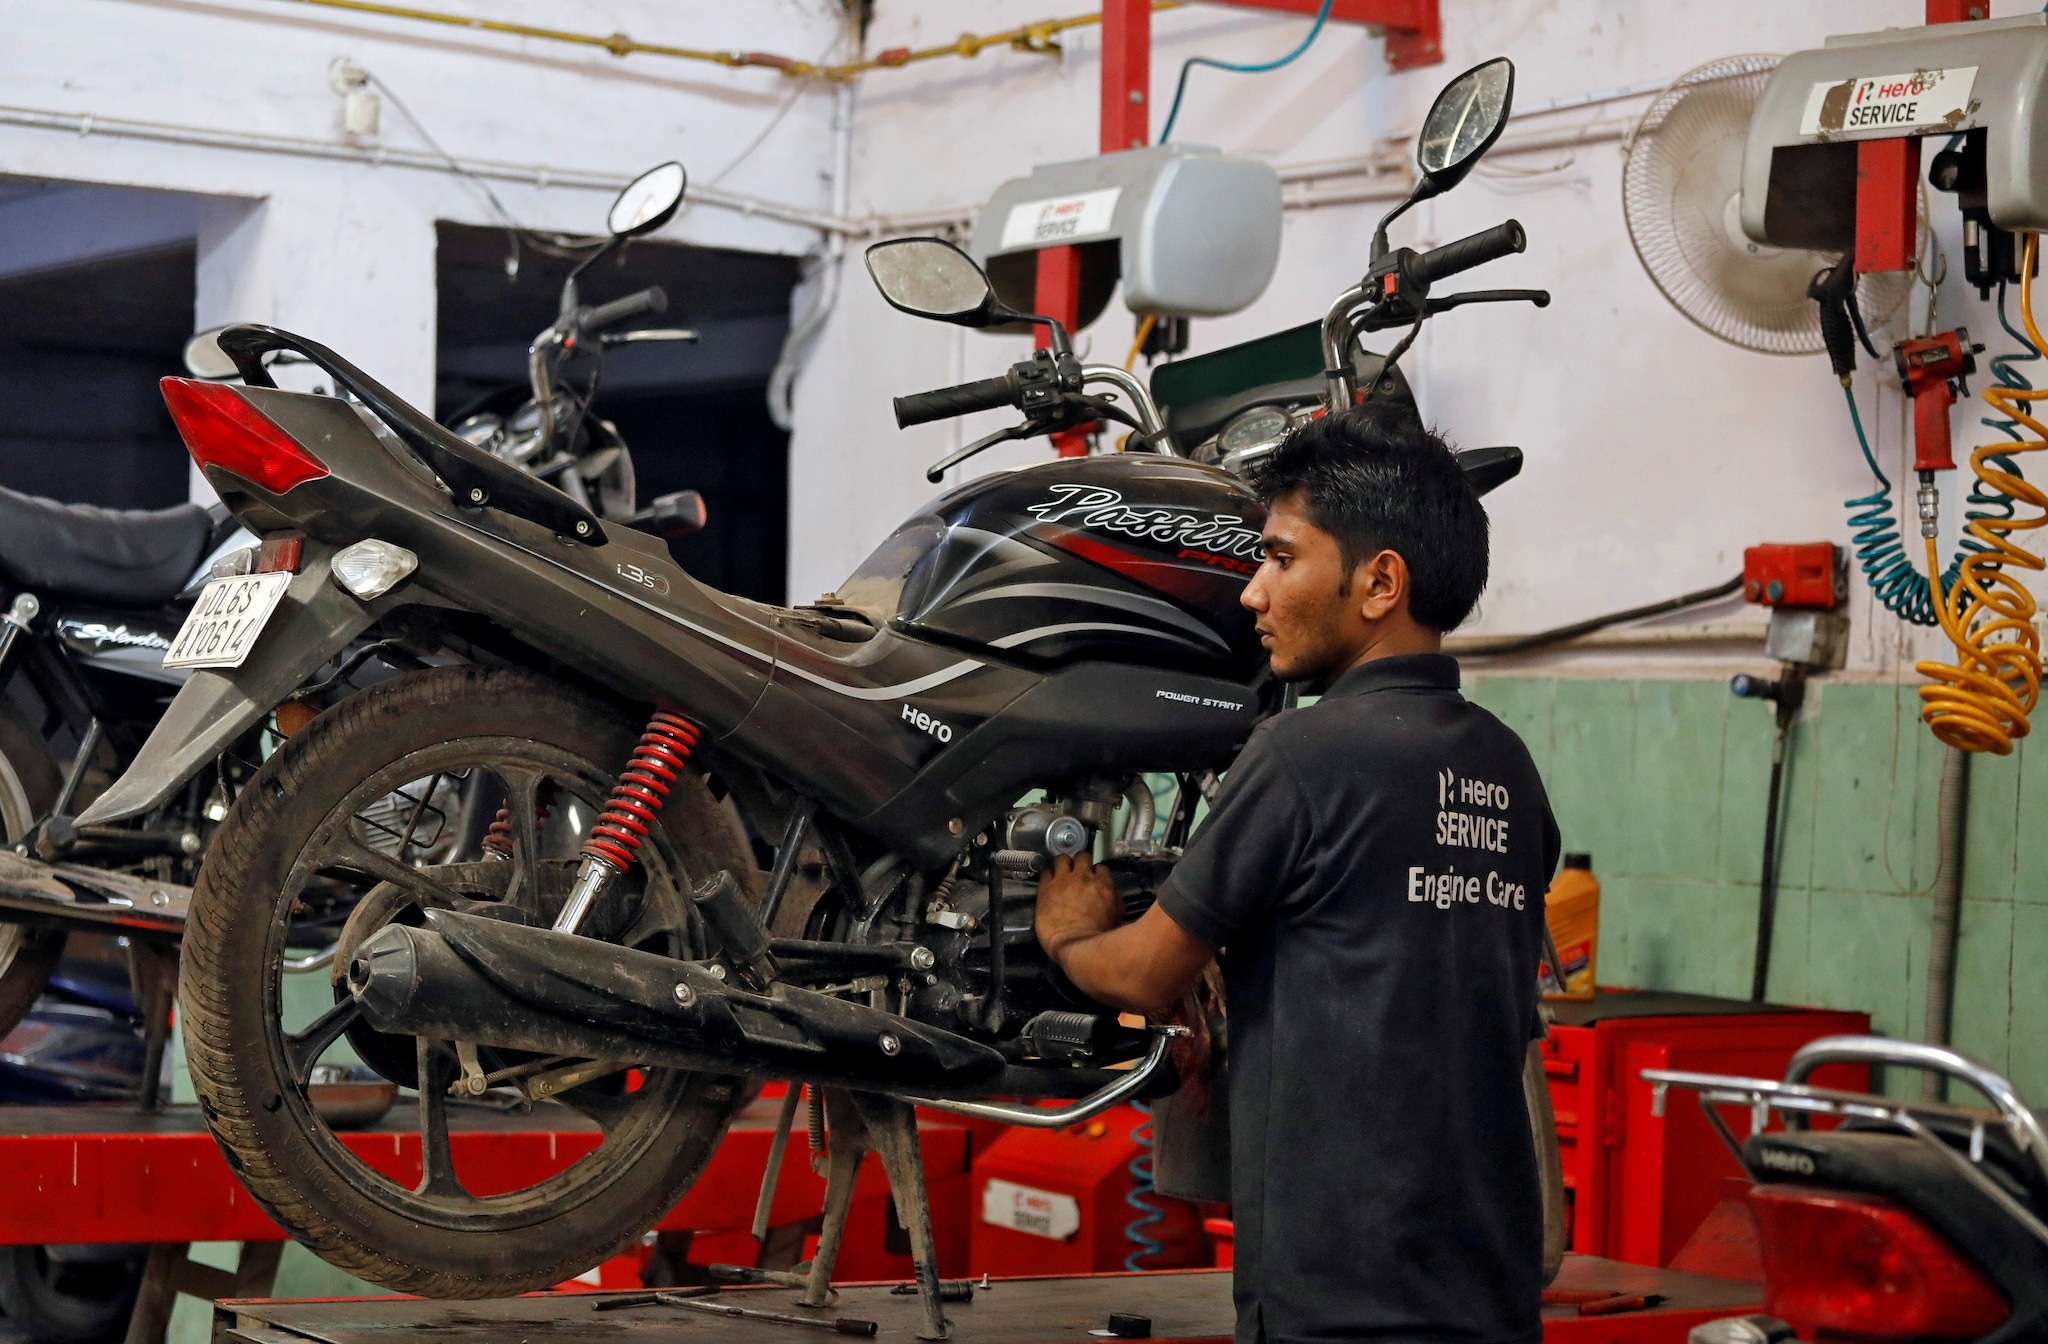 Hero Motocorp (Sell | TP: Rs ): CLSA remains cautious on India's 2W industry given weak demand and big regulatory cost push in 2020. Ebitda margins of 2W OEMs were flattish-to-higher sequentially in 1Q, but CLSA said it believes the respite is temporary as companies will find it tough to pass on the full cost impact of the upcoming BS6 emission norms amid weak demand and high competition. Stock is down ~45 percent from peak, but its 14.5x FY20CL PE is still not cheap in the context of lacklustre earnings outlook. CLSA cut FY20-21CL EPS by 4-6 percent and retain SELL with TP of Rs2,100 (Rs2,350 earlier).